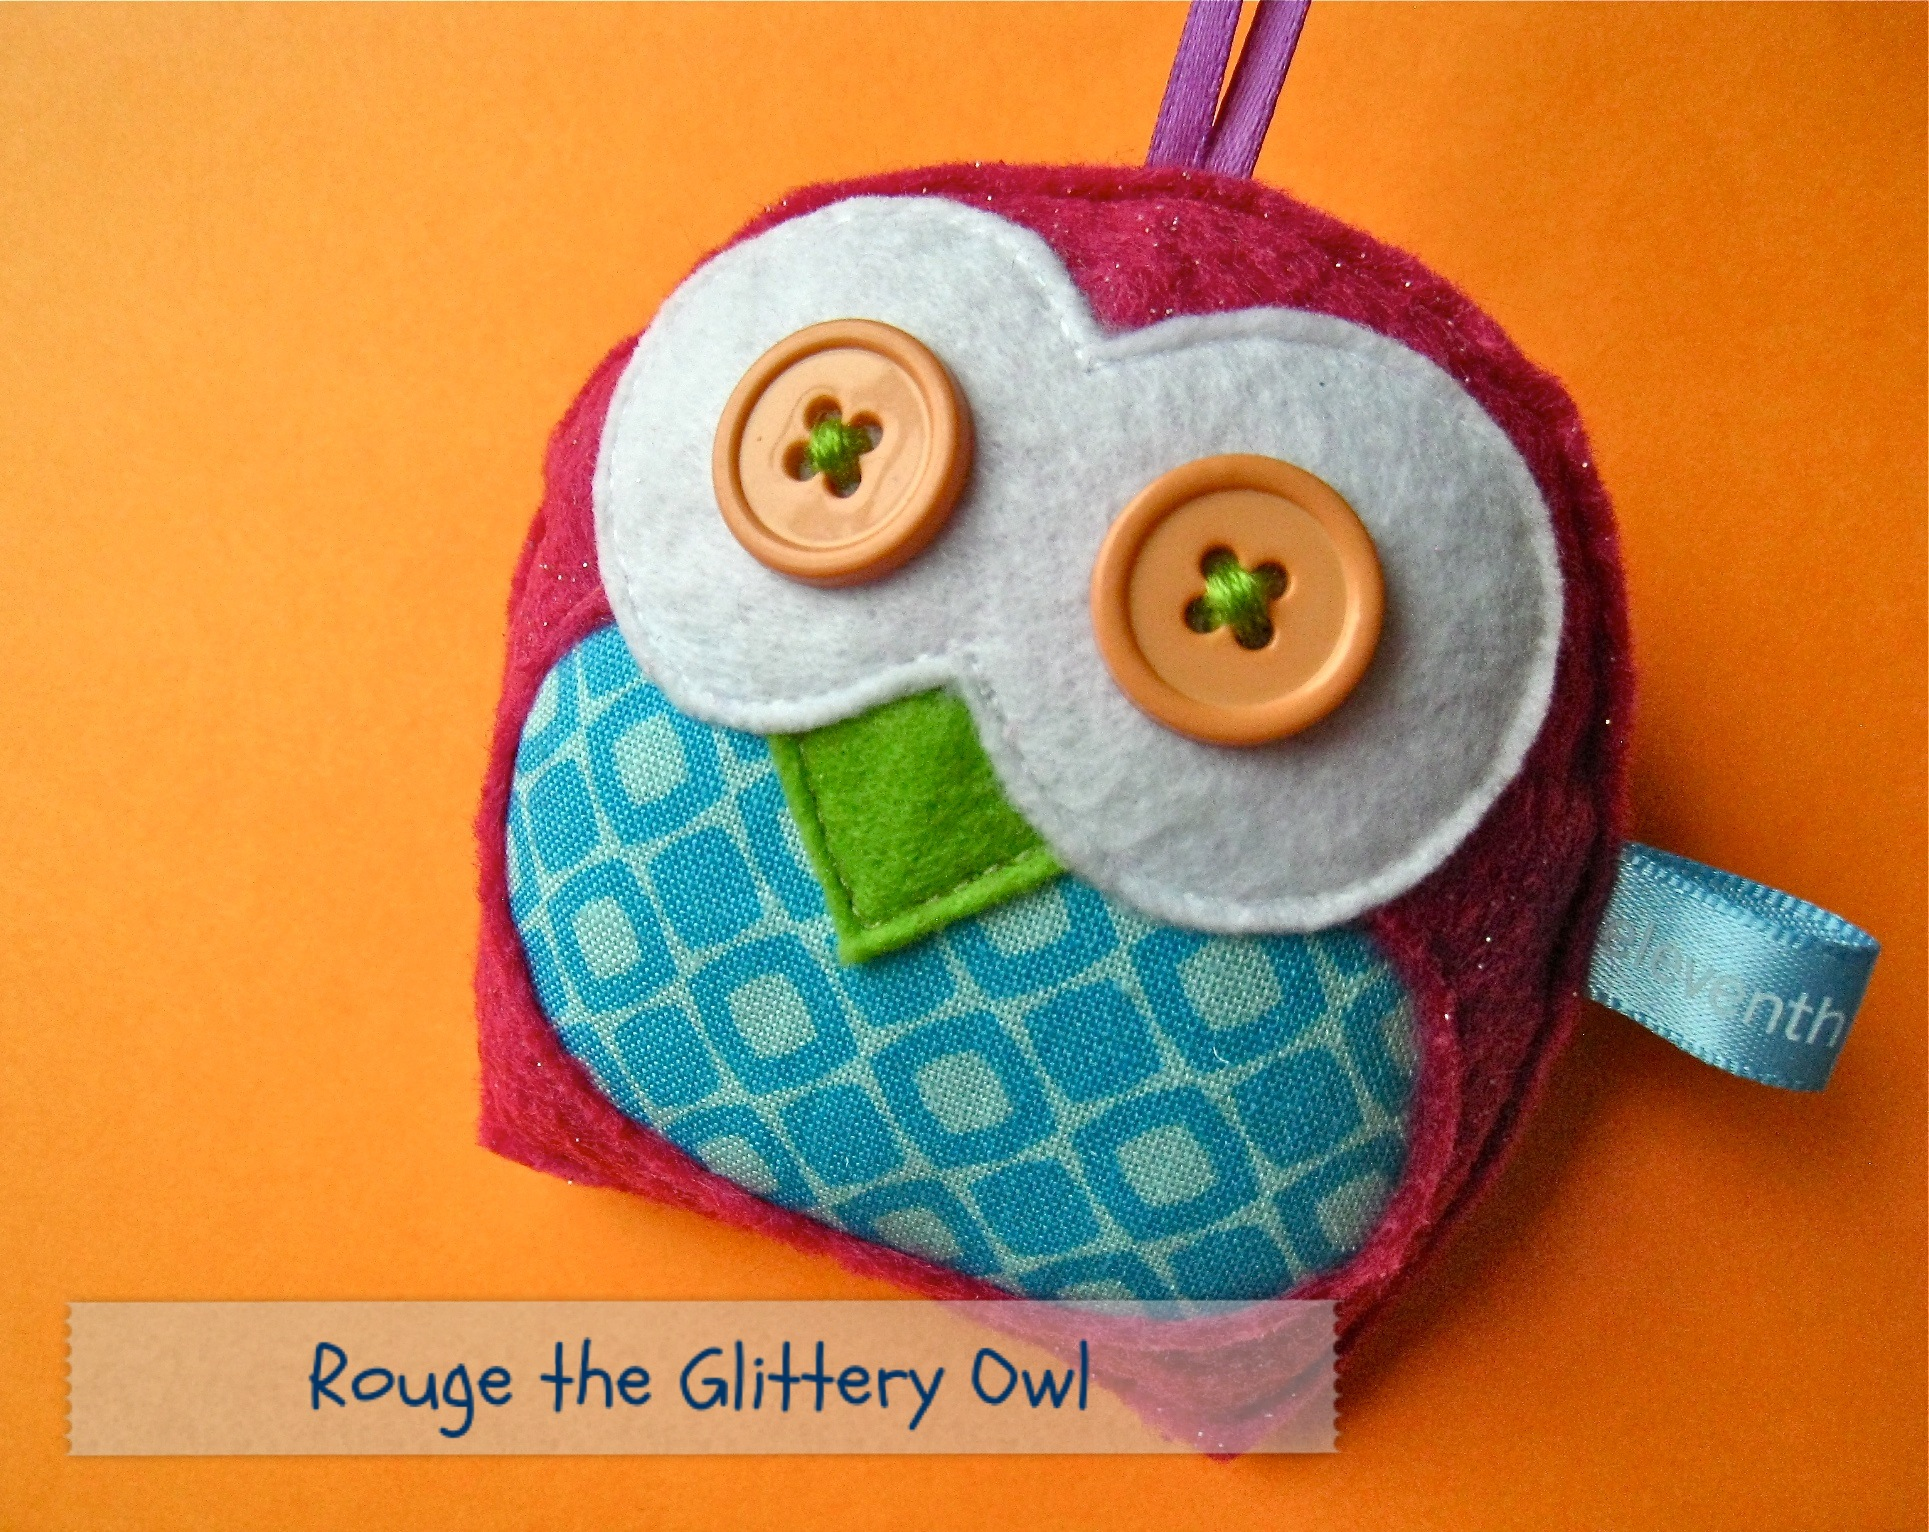 Rouge the Glittery Owl